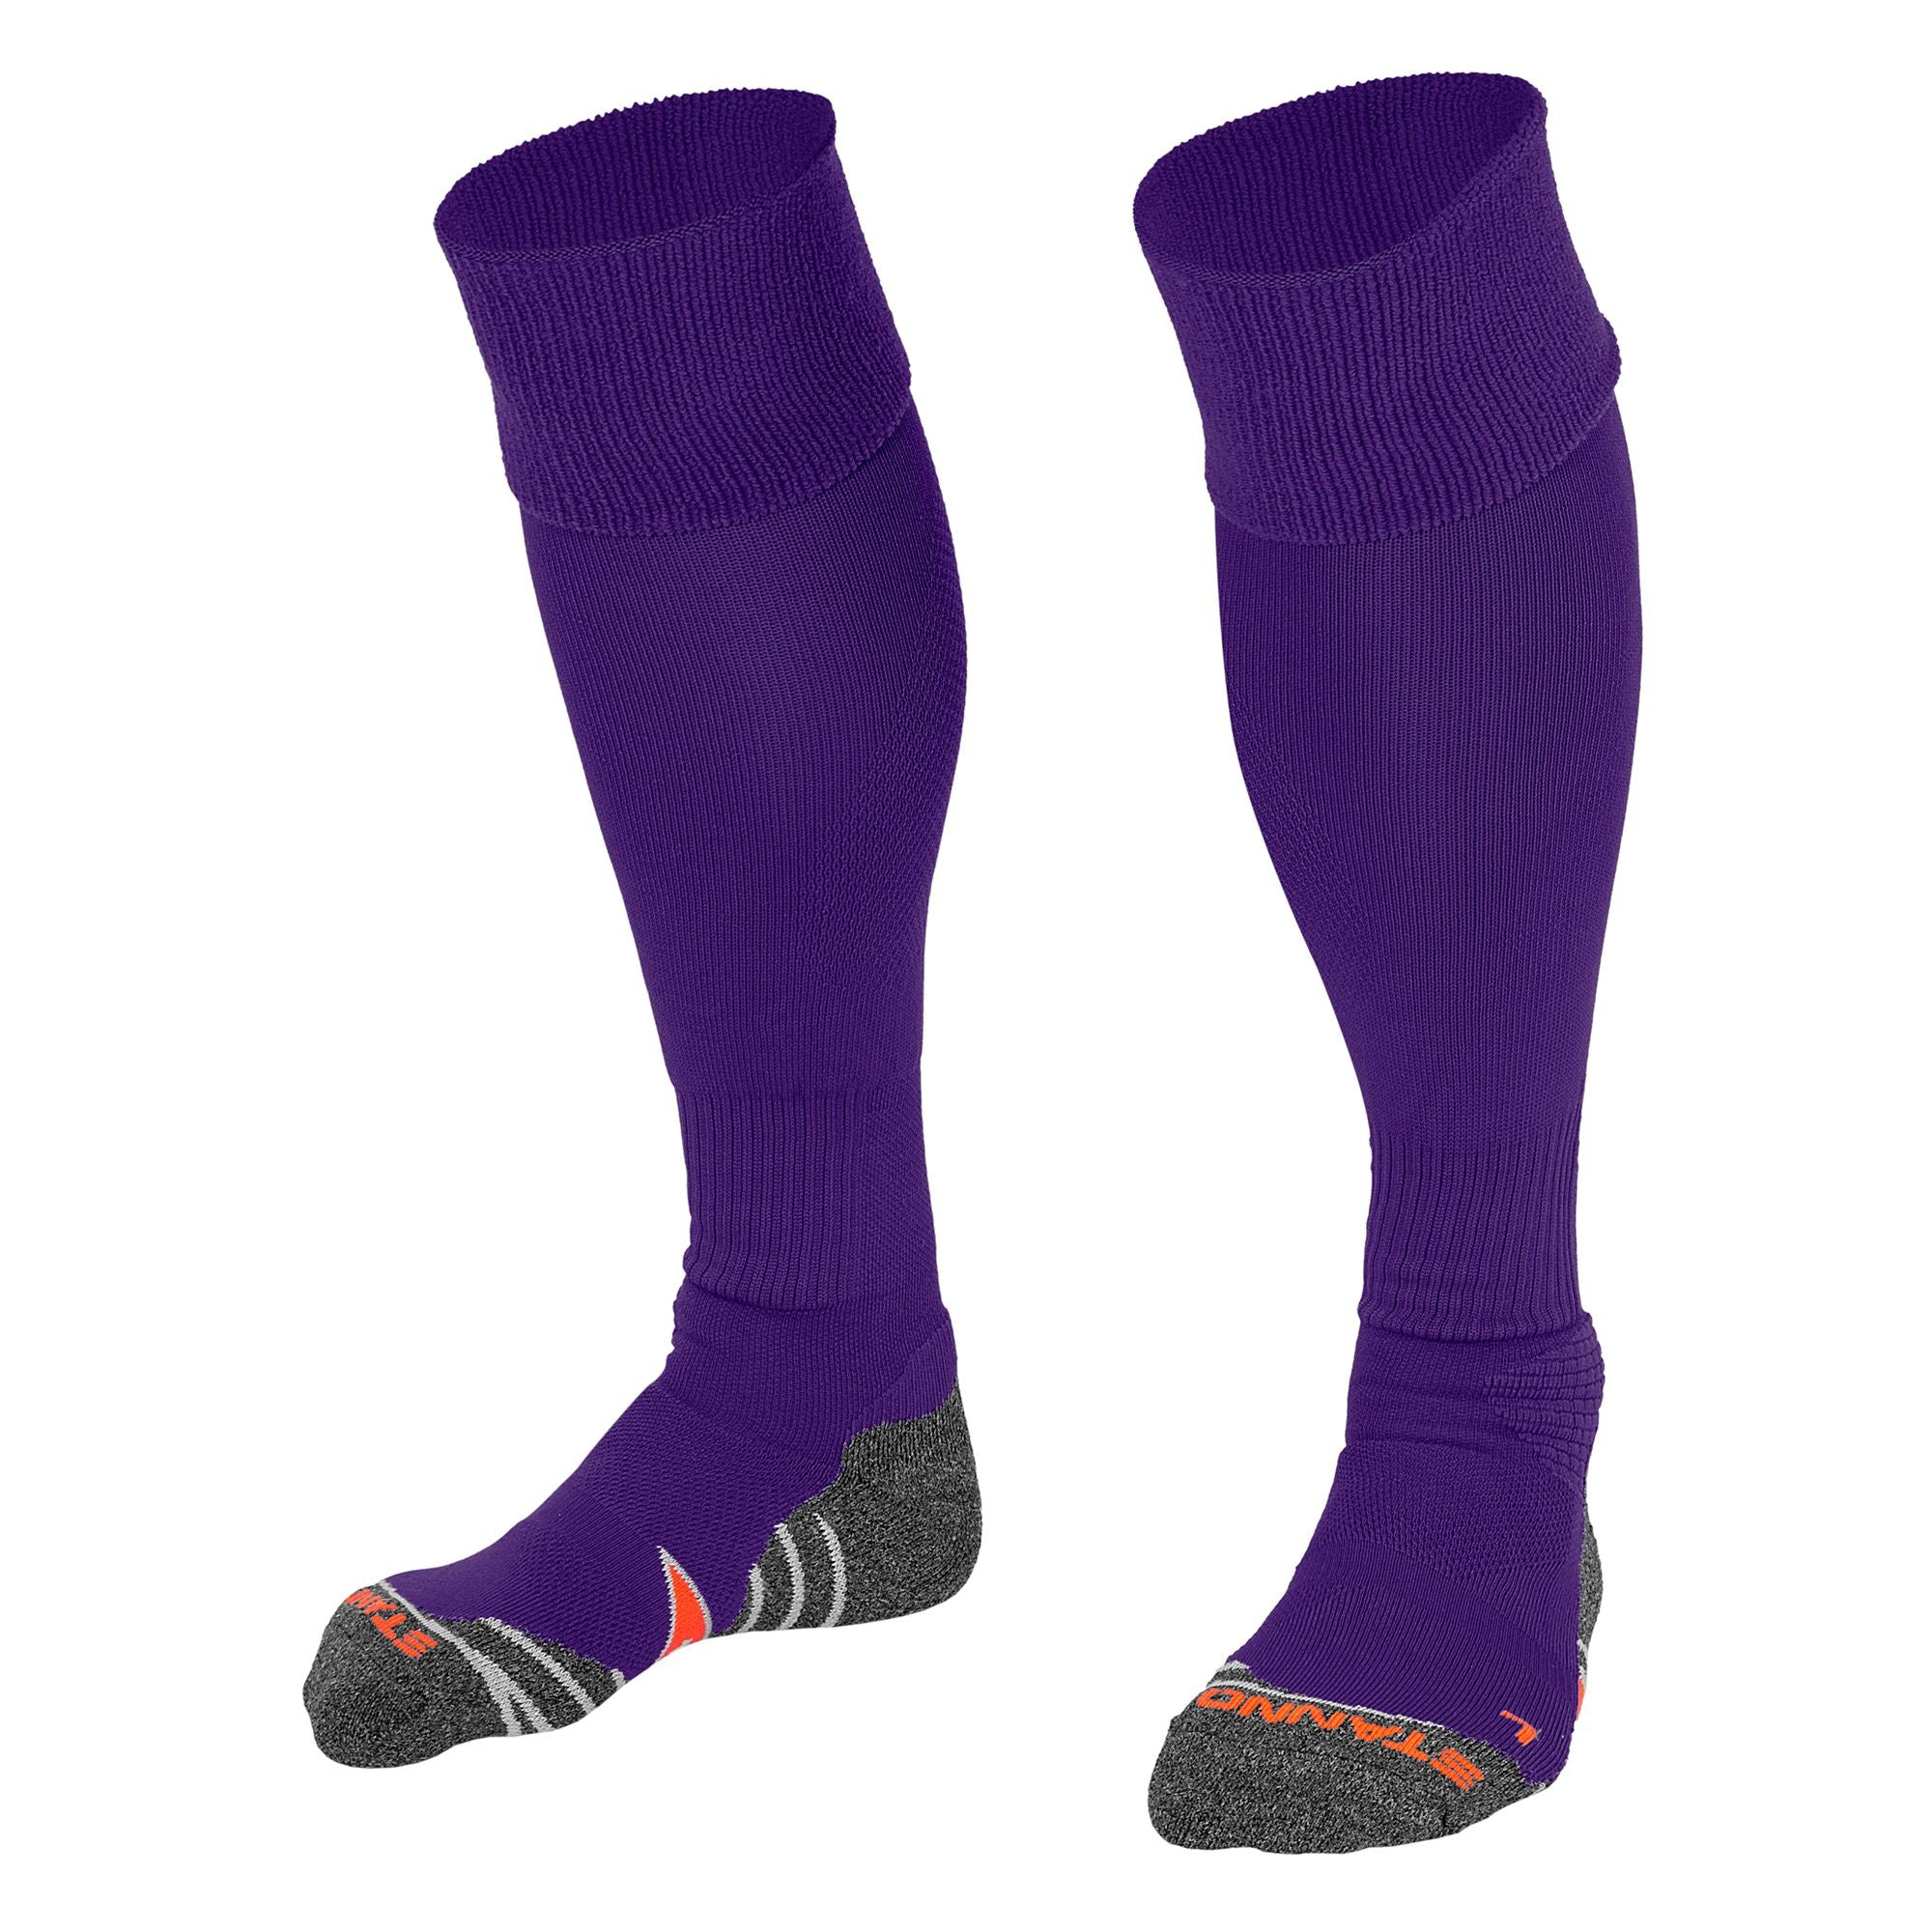 Stanno Uni Sock II football sock in purple with grey, white and orange sole